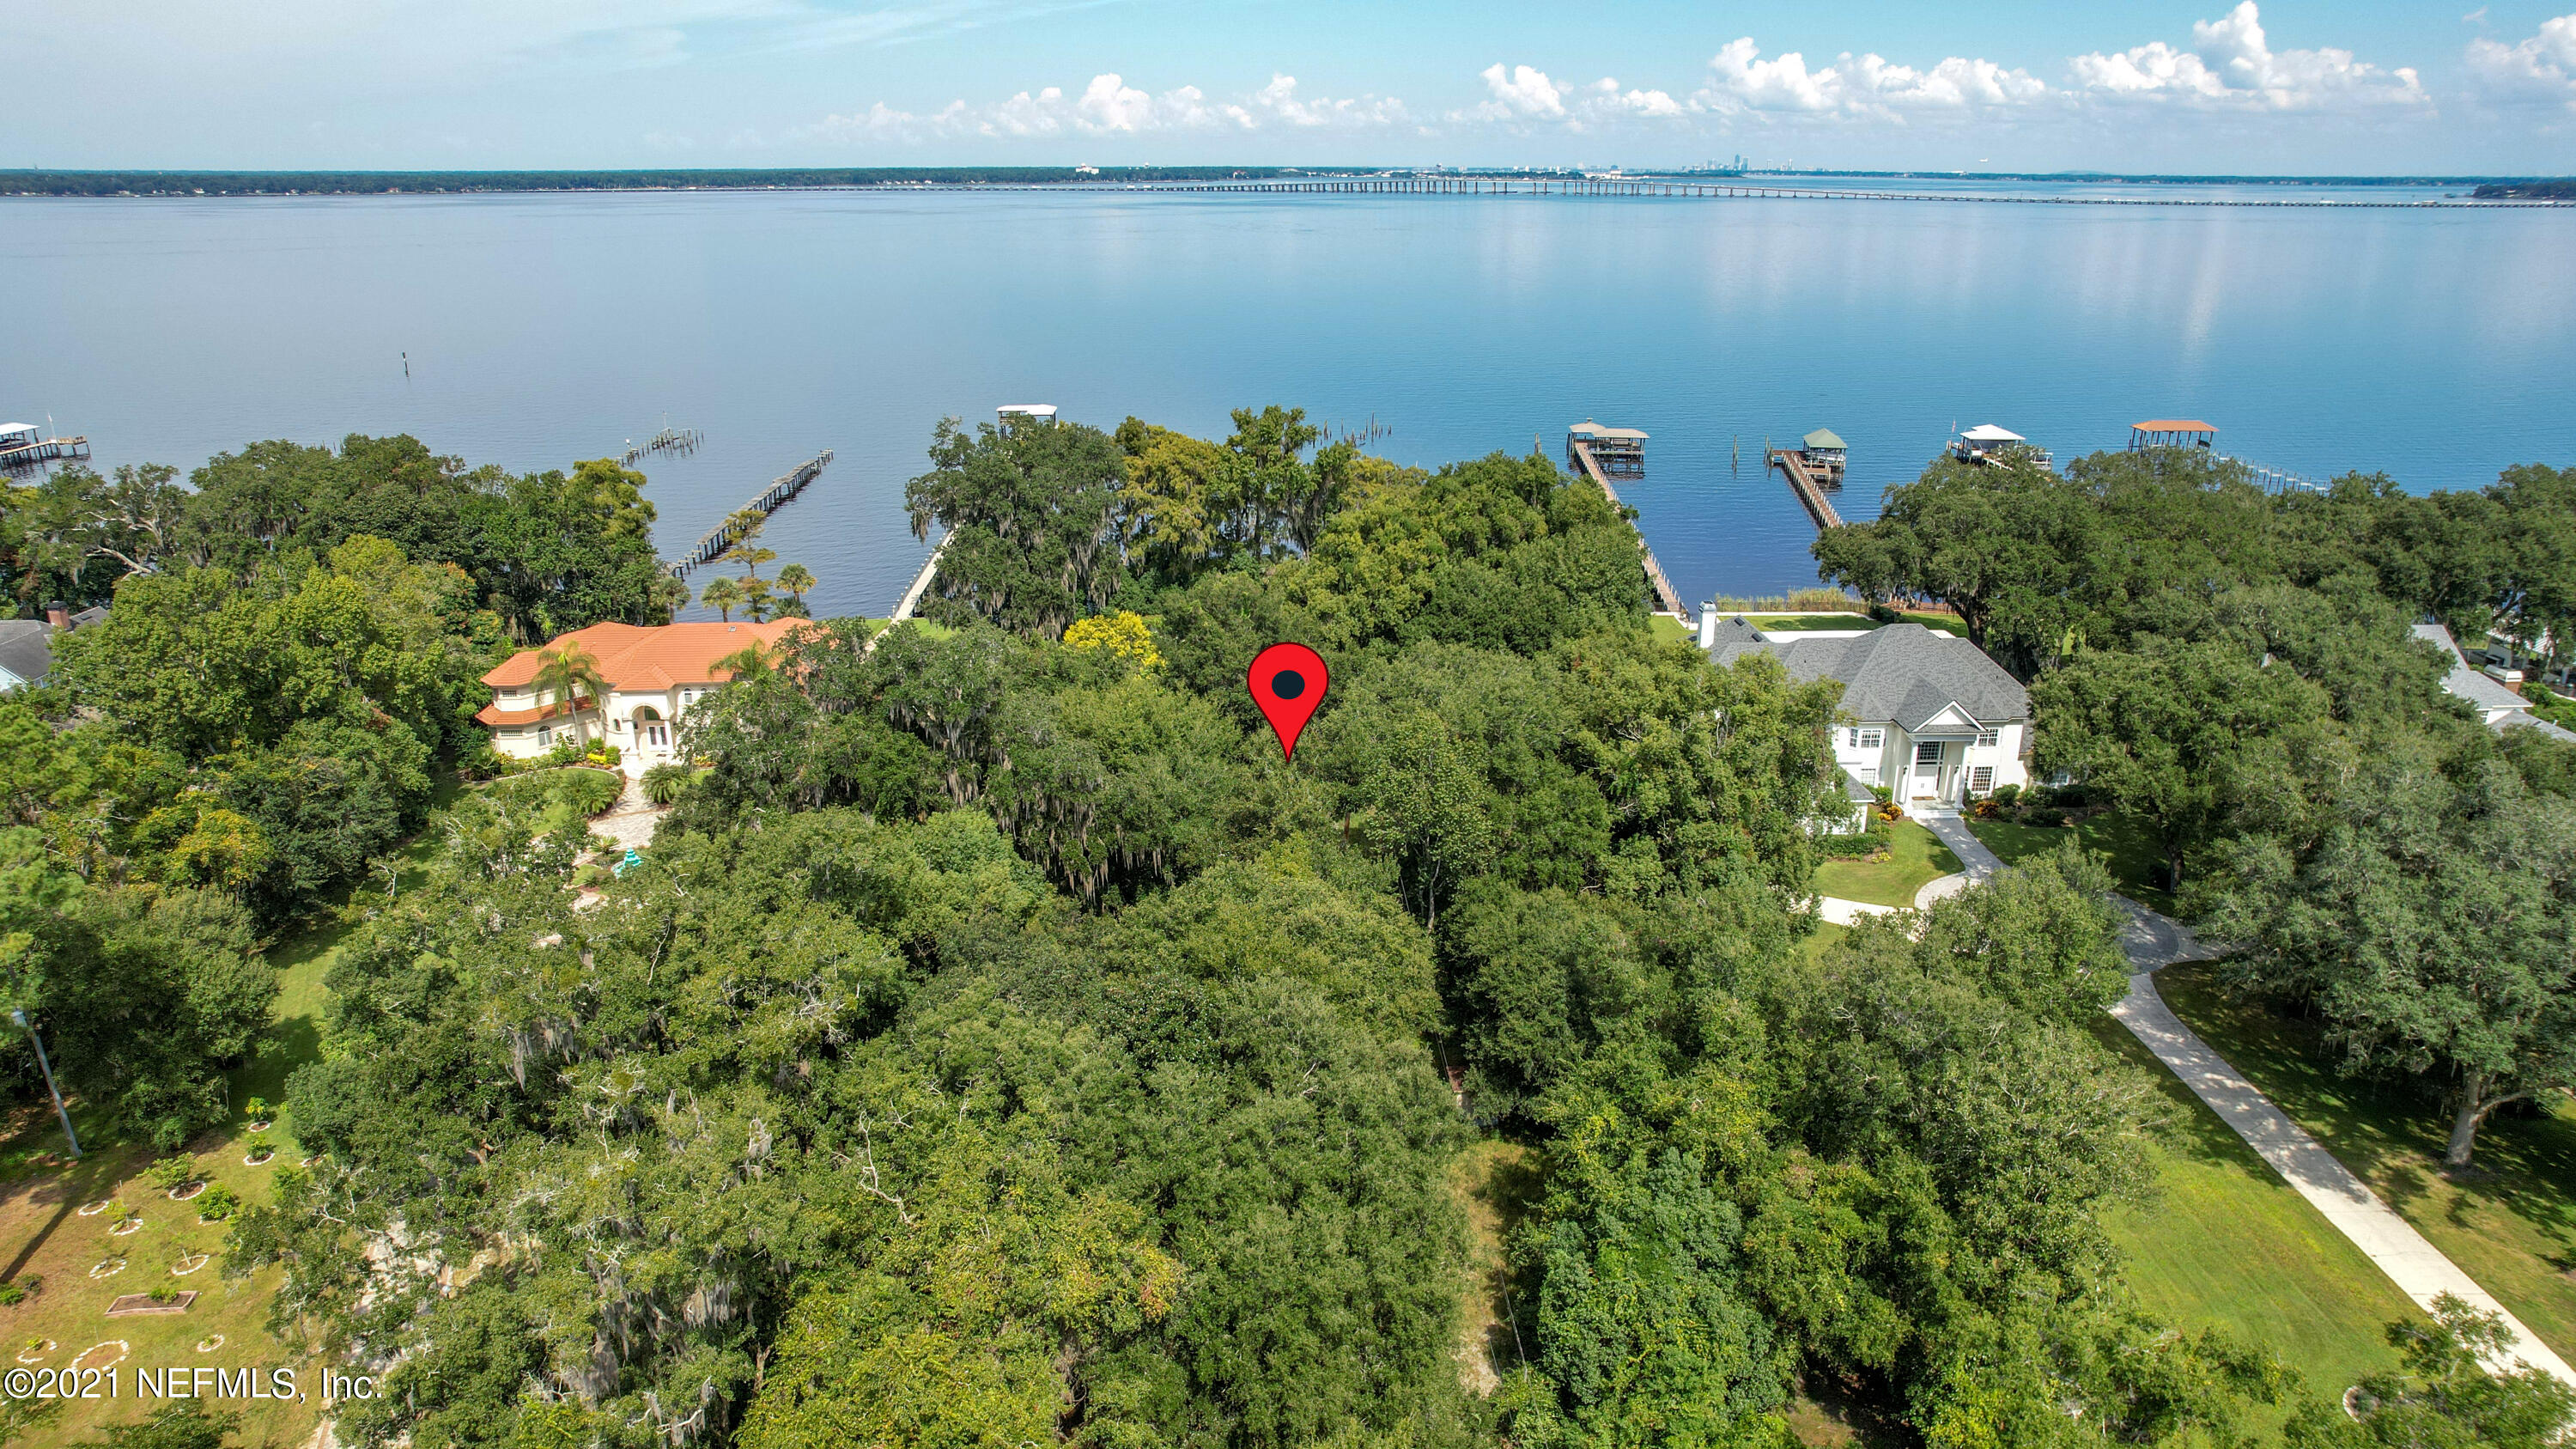 Rare Find! One of a Kind! The Value is in this Prime, Riverfront Lot in Historic, Mandarin with Close to 4 Acres (181' of frontage x 831' in depth). Exceptional Privacy, and Views Across the St Johns River, with Close Proximity to all of the Conveniences of the City. Originally Developed as a Citrus Orchard, with Existing Mandarin Orange, Lemon & Grapefruit Trees. This Unique and historic home was Built in 1885 w/''Good Bones'', but will Require Major Renovation to Dwellings (home and Several outbuildings) and Dock. It would be worth the Consideration of Renovating it. Septic System Replaced a Few Years Ago.